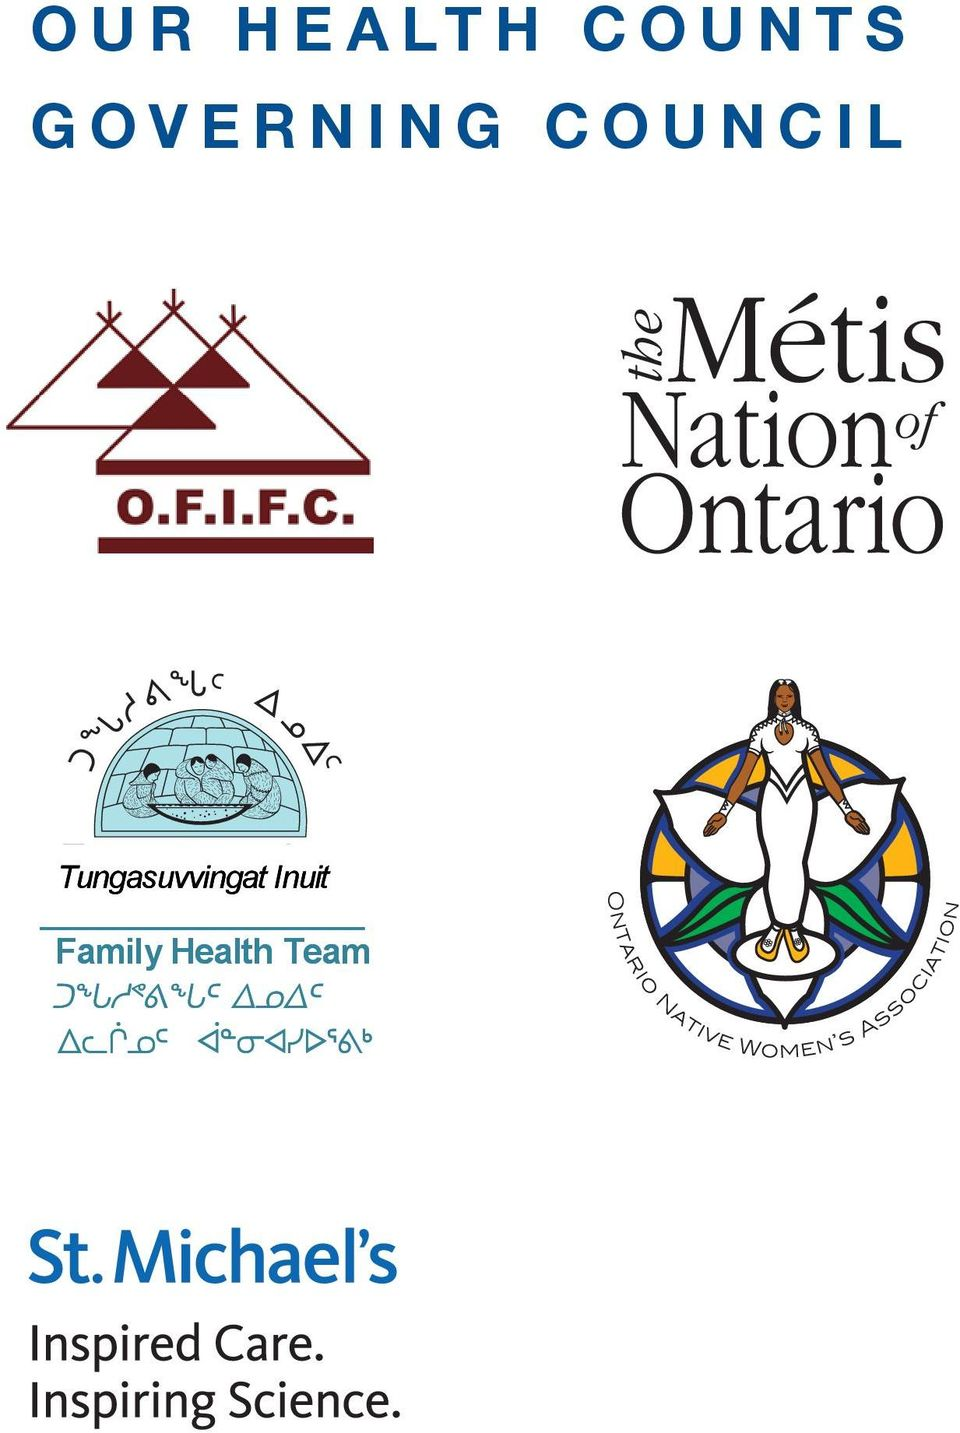 0A4 Ottawa, ON, K1L 0A4 Family 40-0999 Family Health Health Team Team Fax: (613)-740-0991 Colleen Arngna naaq ᑐᑐᑐᑐᑐᑐᑐ ᑐᖓᓱᕝᕕᖓᑦ ᑐᑐᑐᑐ ᐃᓄᐃᑦ ᐃᓄᐃᑦ -0991 Community Health Researcher t.